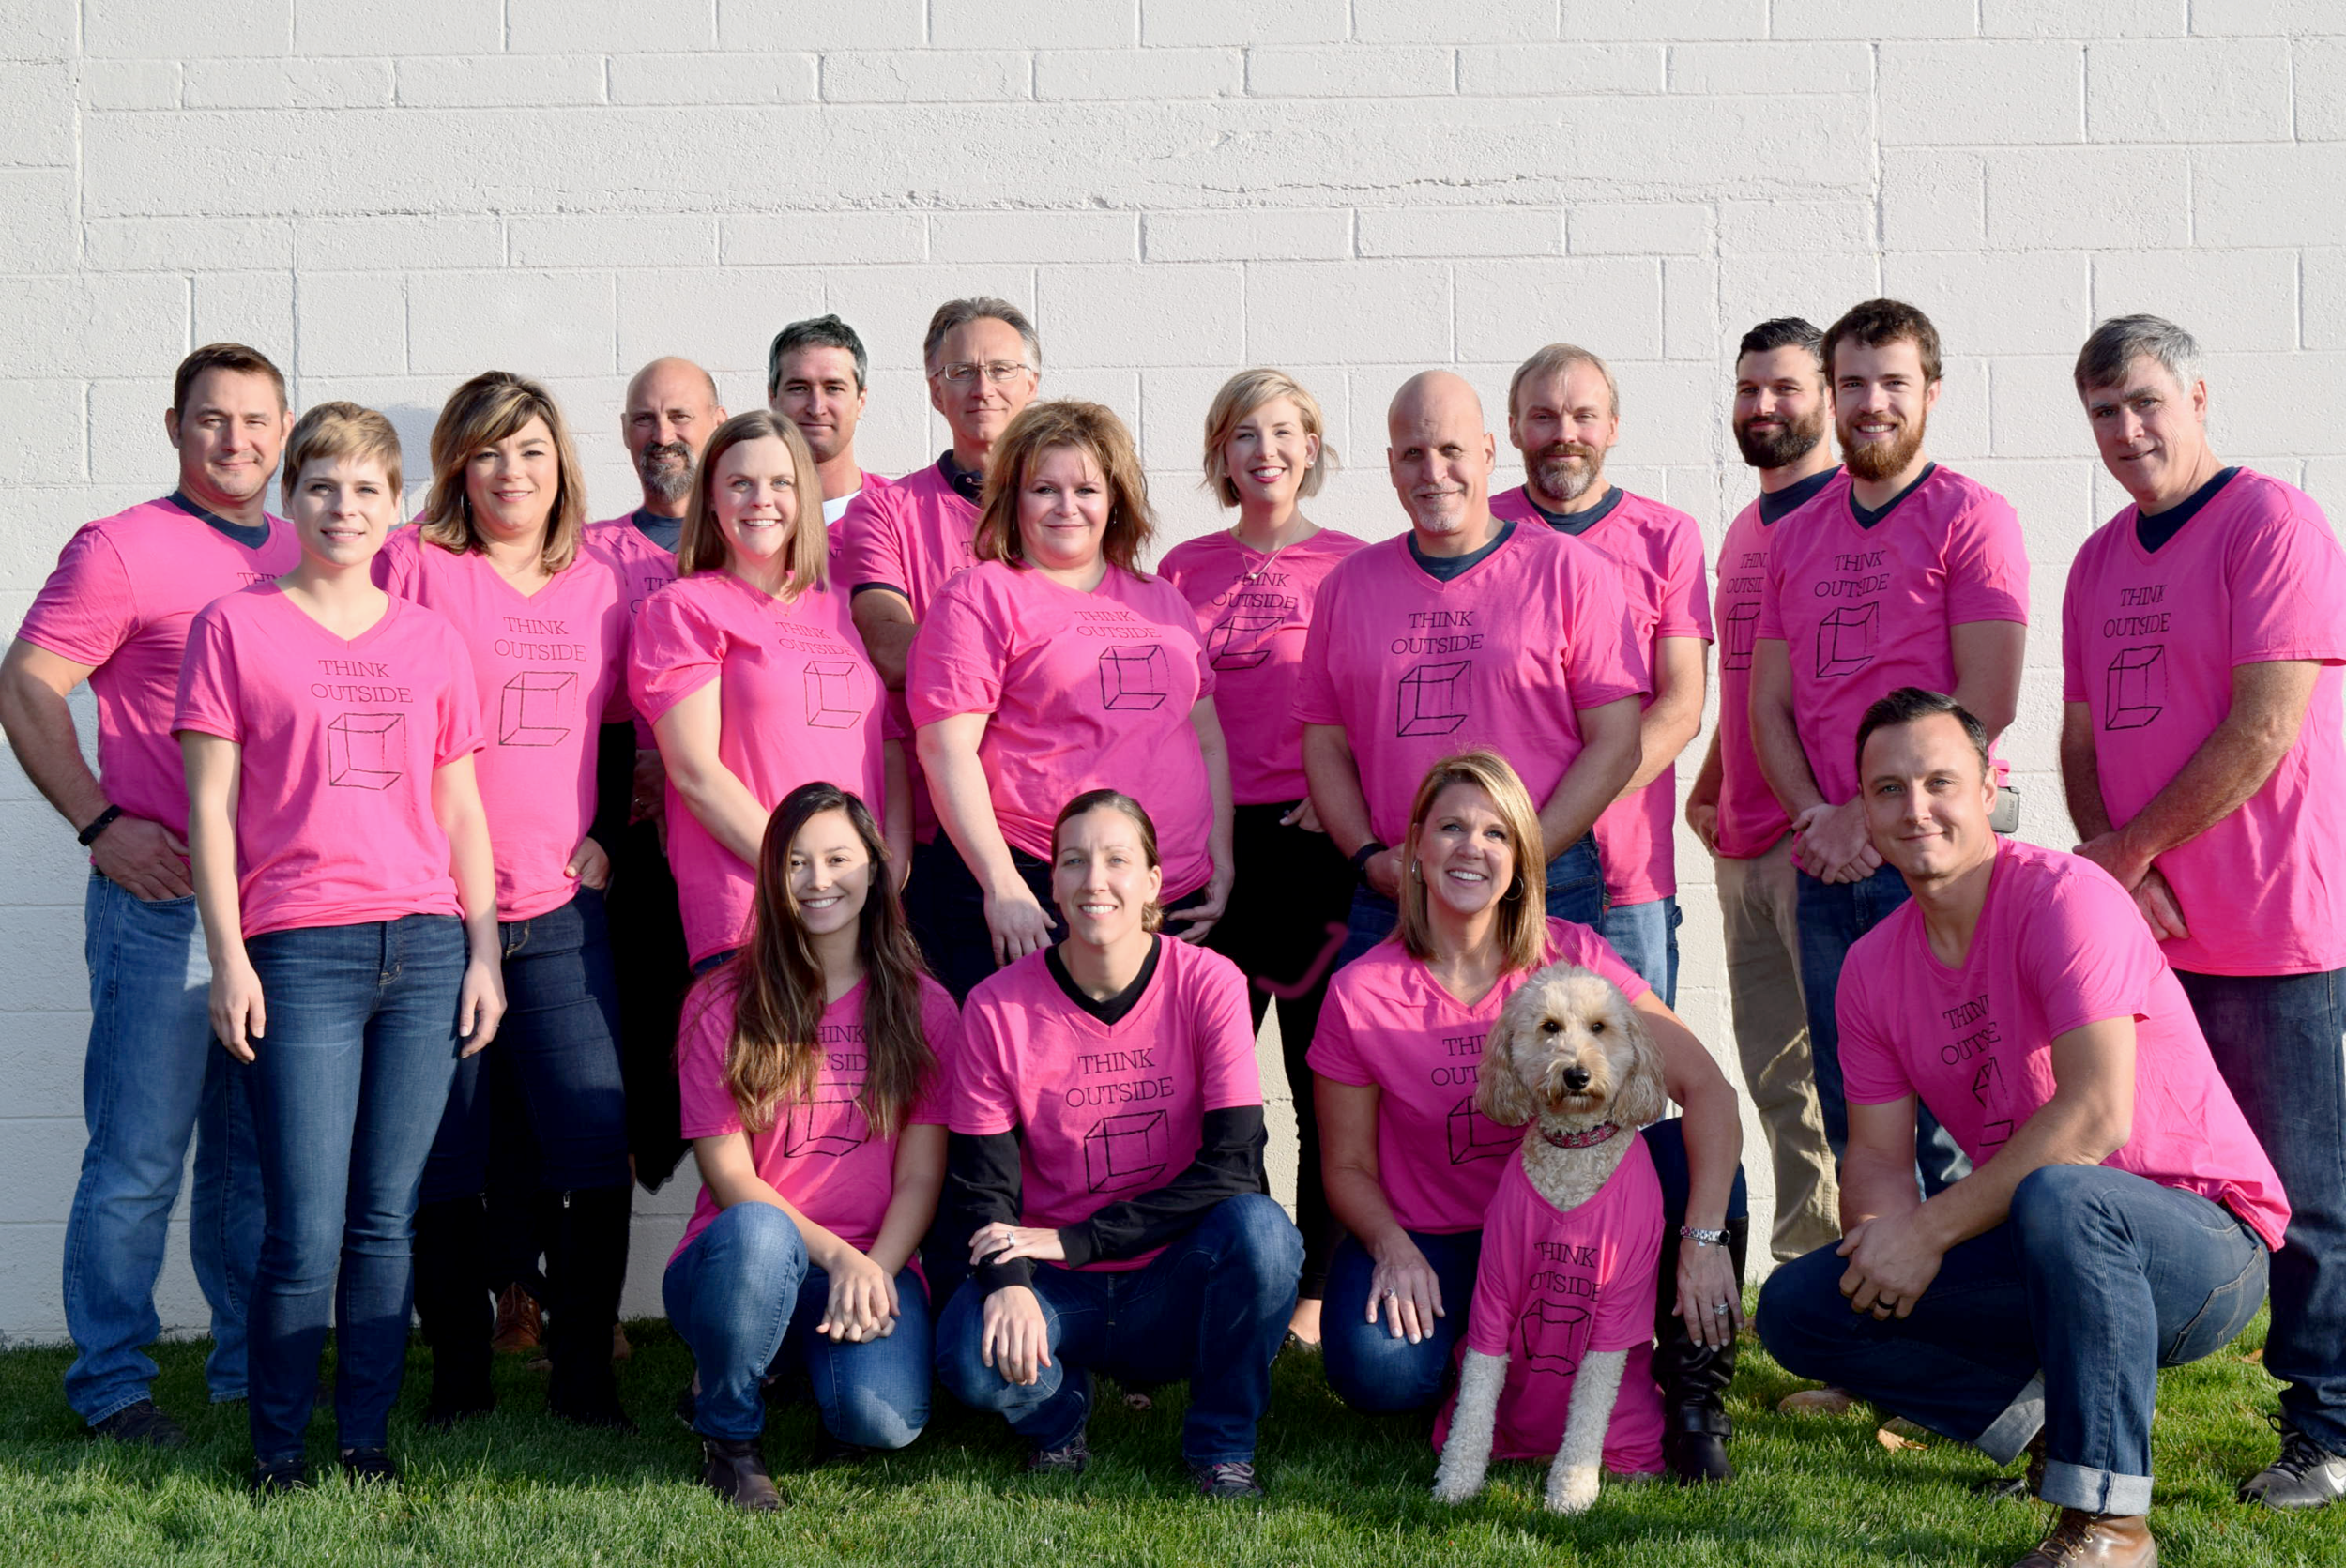 the team at forward design build remodel - with the help of family, friends, and our fans on facebook - was able to donate a total of  $2770  to the breast cancer research program at the university of michigan. Make sure to check out our   #ForwardGives facebook album   with all of your great photos :)